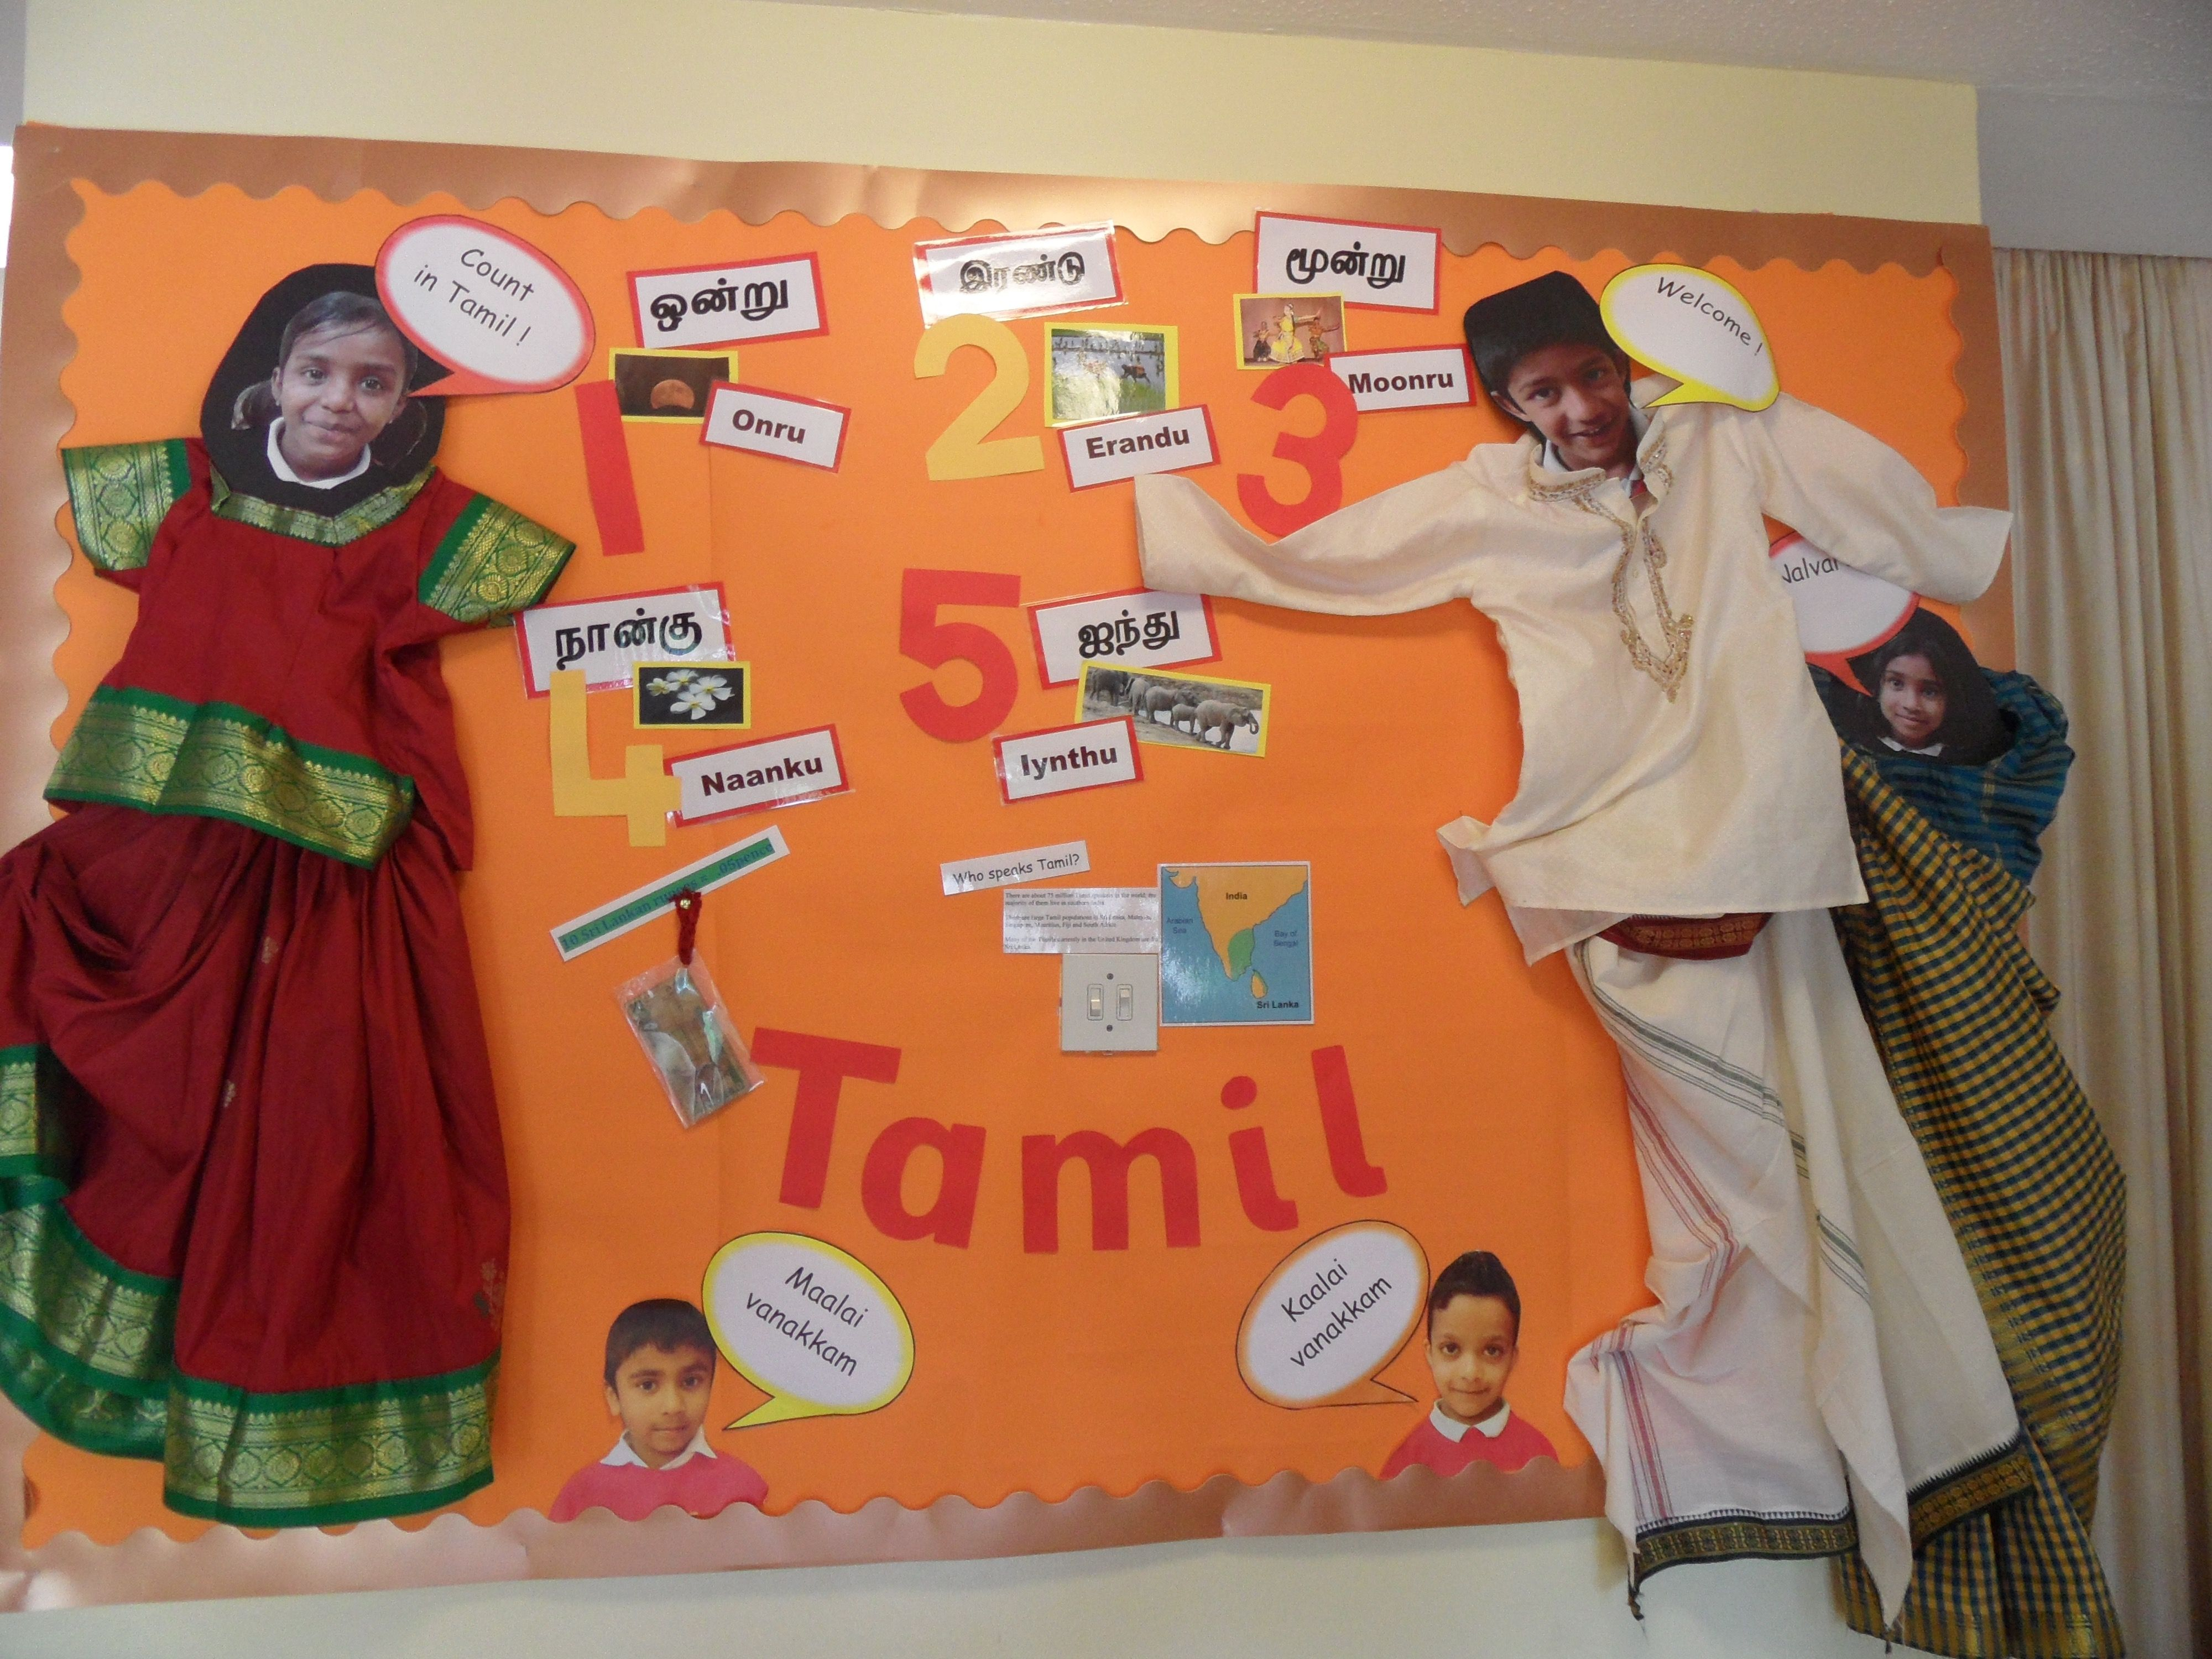 Language Of The Term Tamil Display Classroom Word Wall